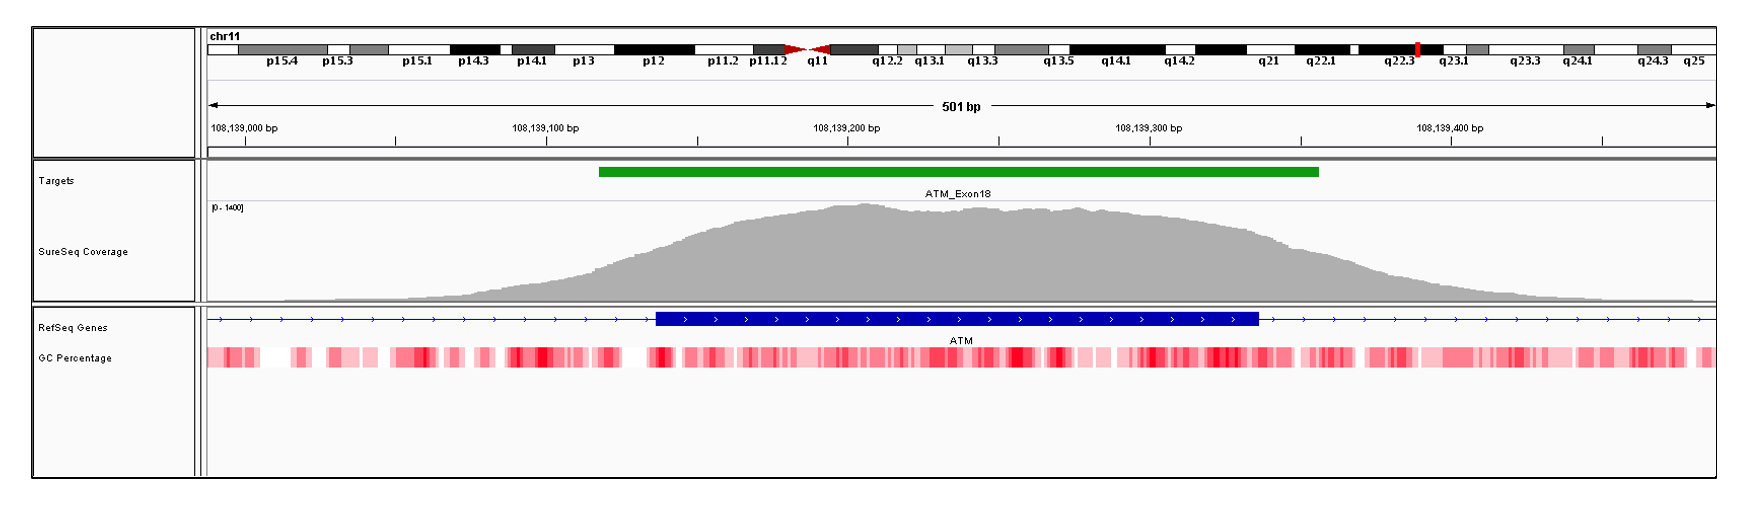 ATM Exon 18 (hg19 chr11:108139137-180139336). Depth of coverage per base (grey). Targeted region (green). Gene coding region as defined by RefSeq (blue). GC percentage (red). Image